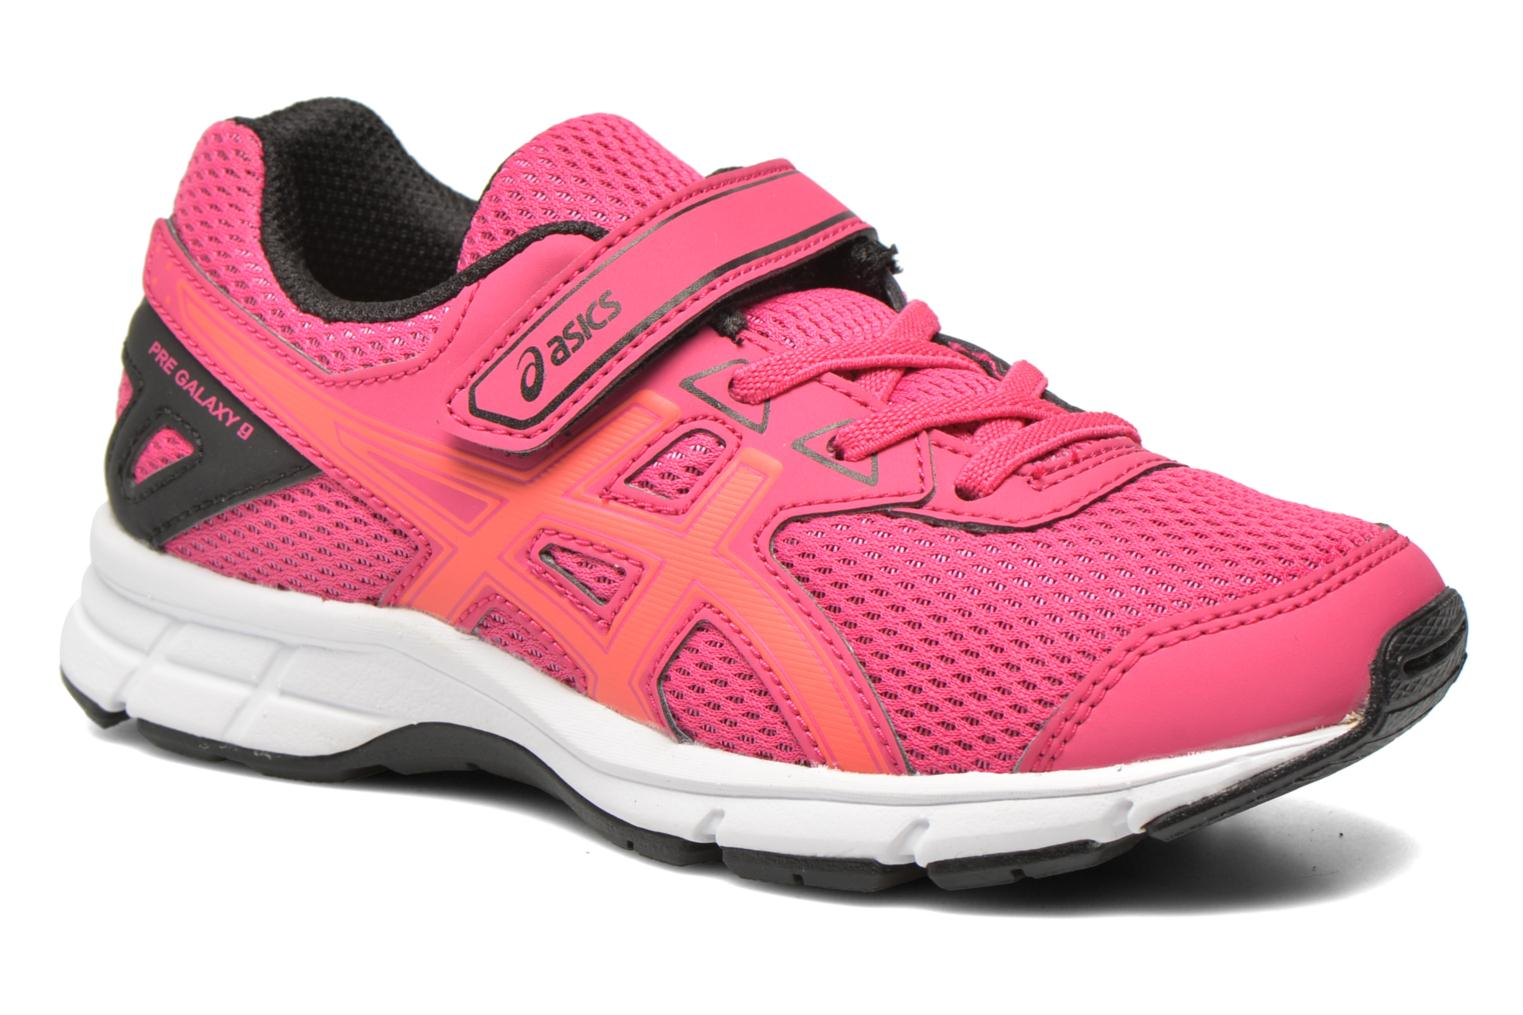 Pre Galaxy 9 PS Sport Pink/Flash Coral/Black